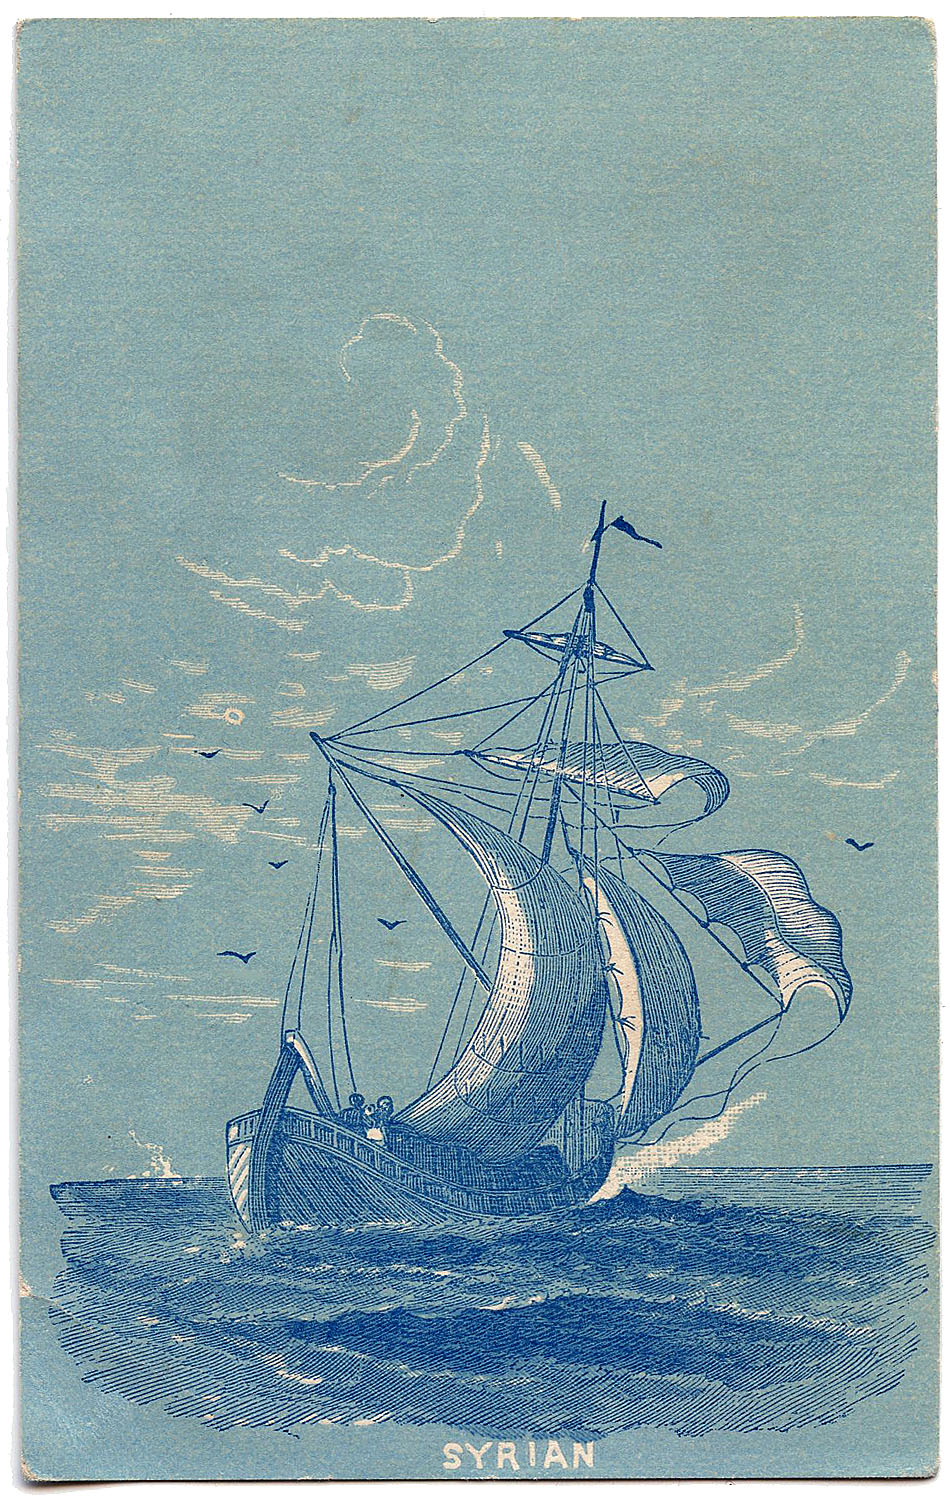 Royalty Free Images - Engravings - Ships - The Graphics Fairy